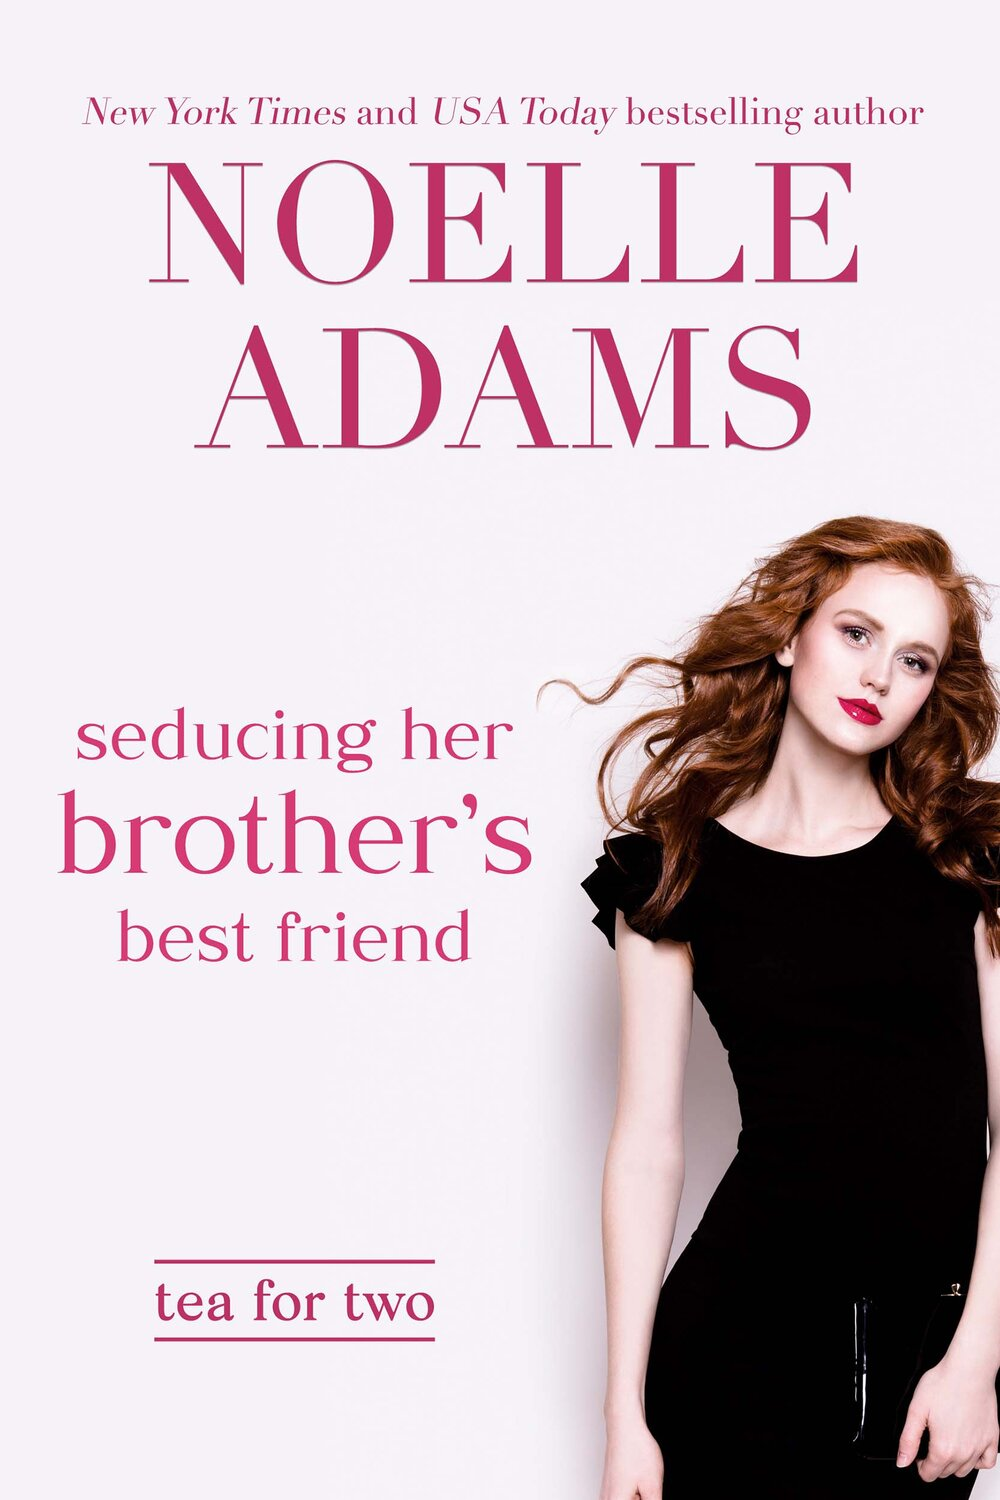 Seducing Her Brother's Best Friend